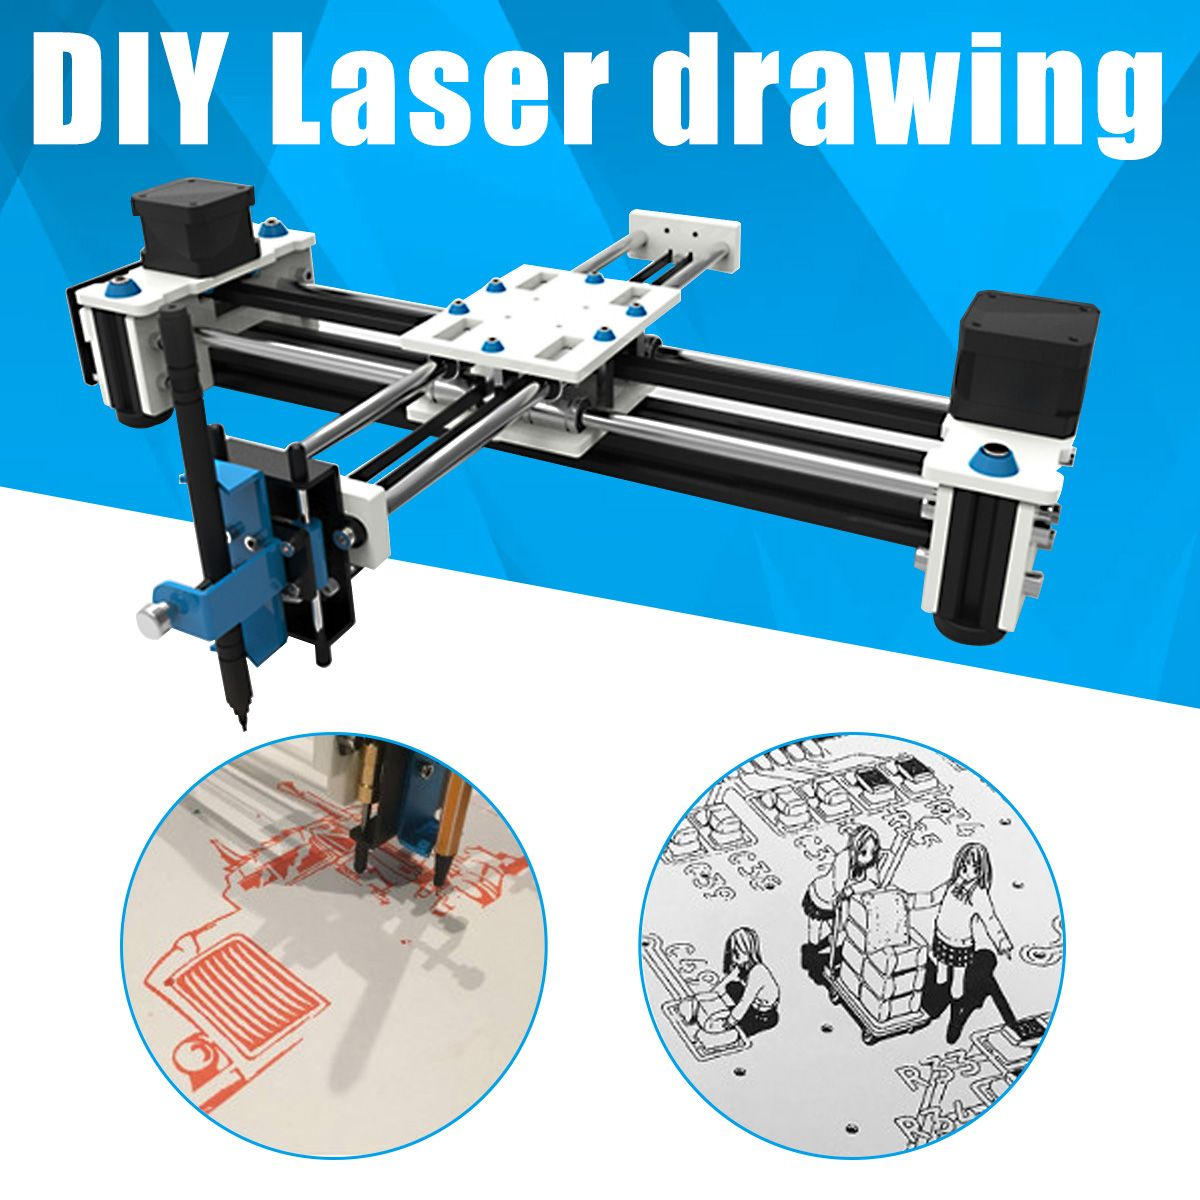 New 280x200mm Mini XY 2 Axis CNC Plotter Pen USB DIY Laser Drawing Machine Engraving Area Desktop Drawing Robot